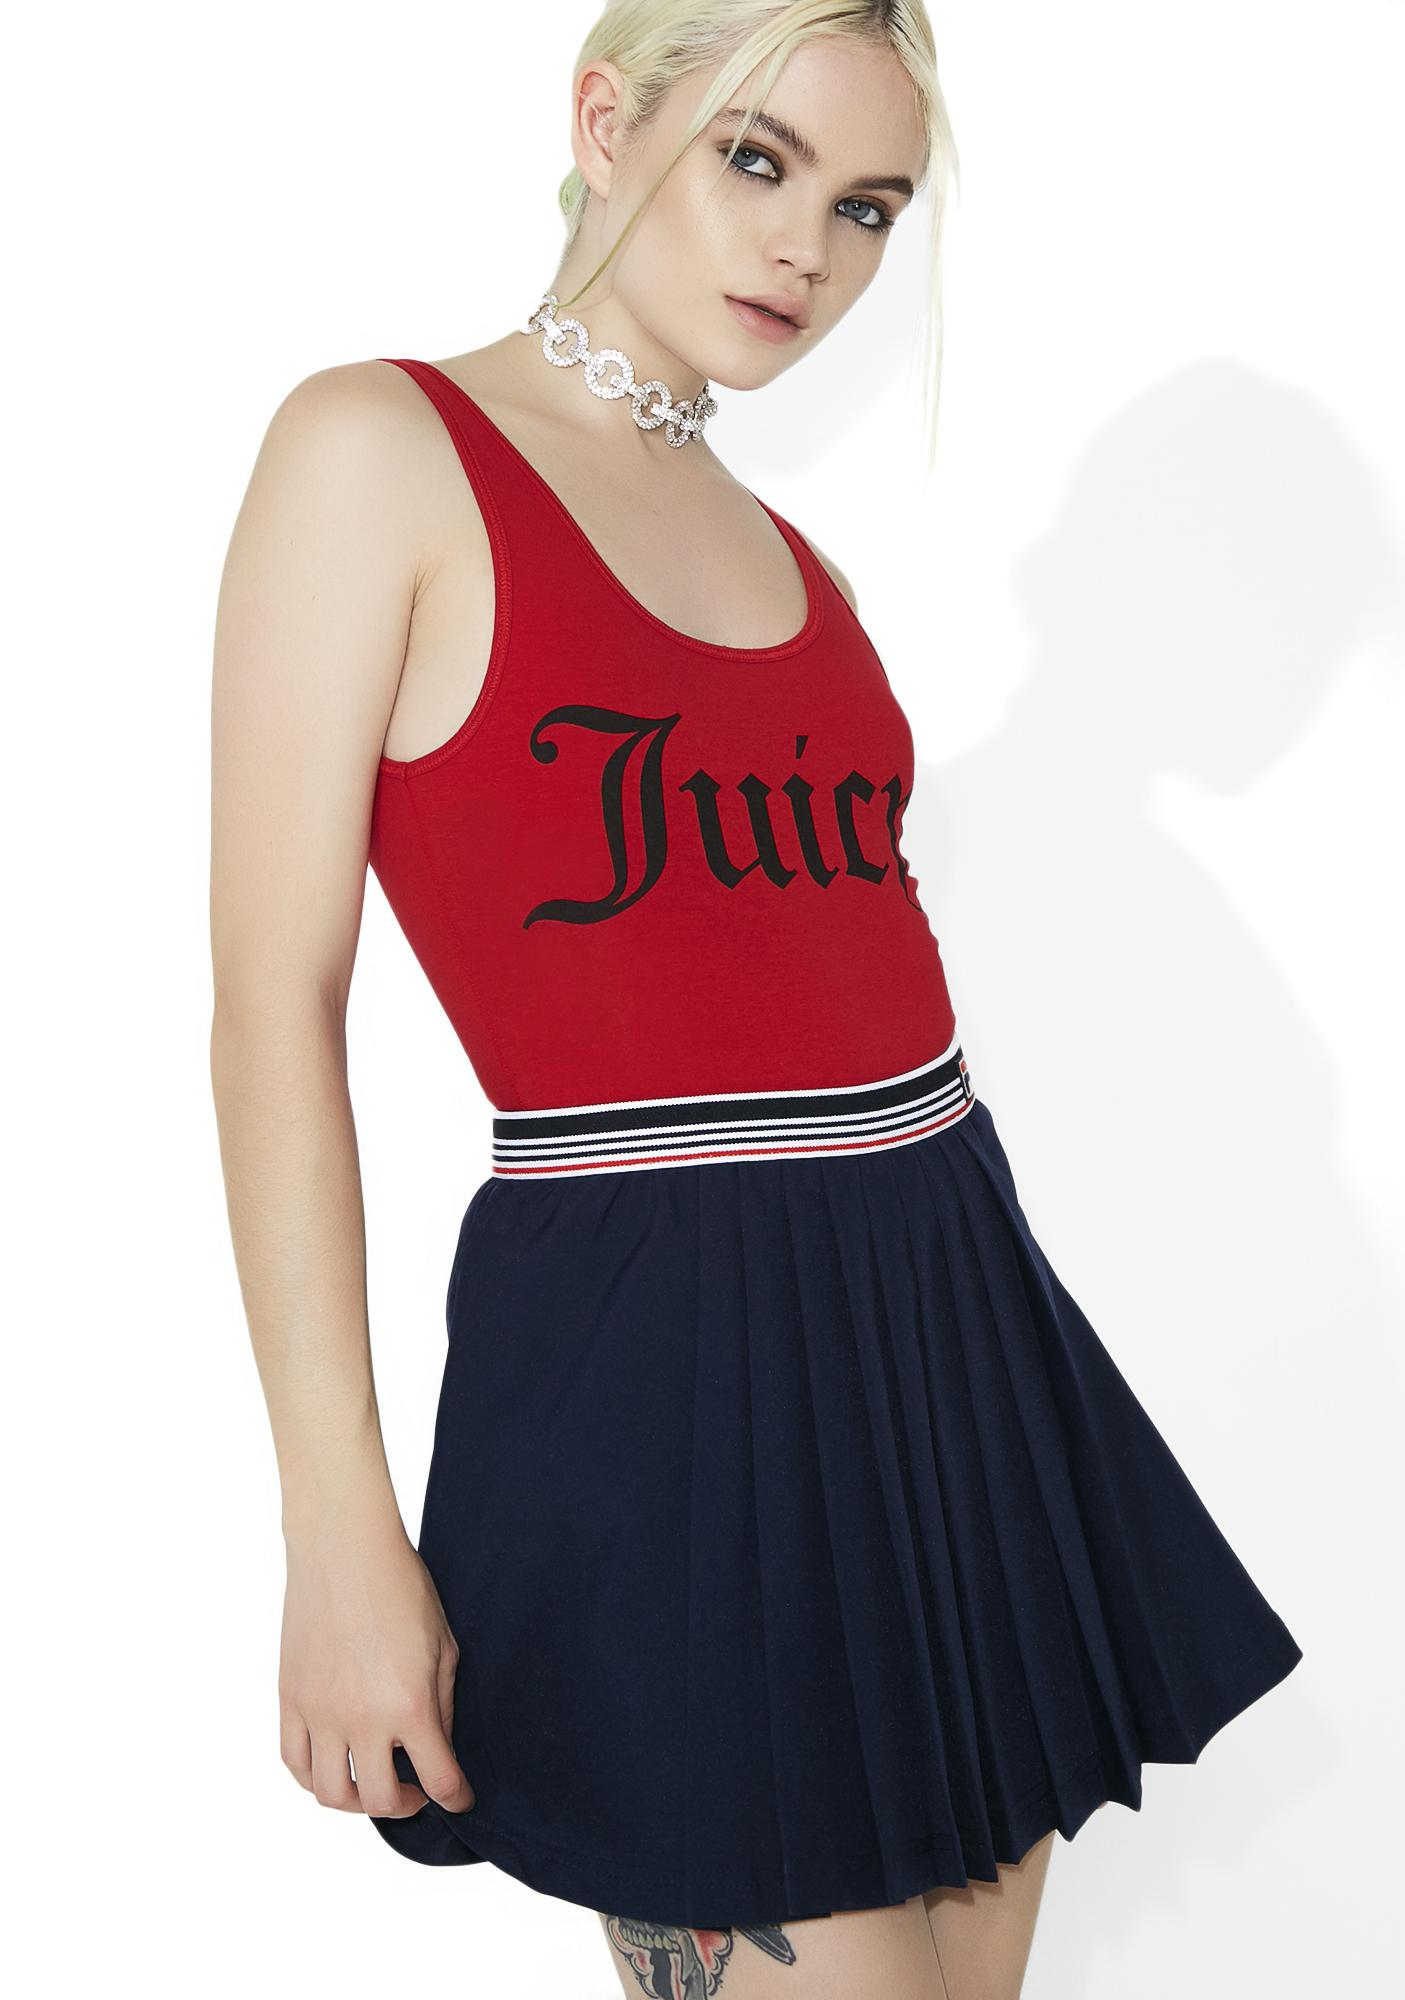 JUICY COUTURE Graphic Scoop Neck Bodysuit